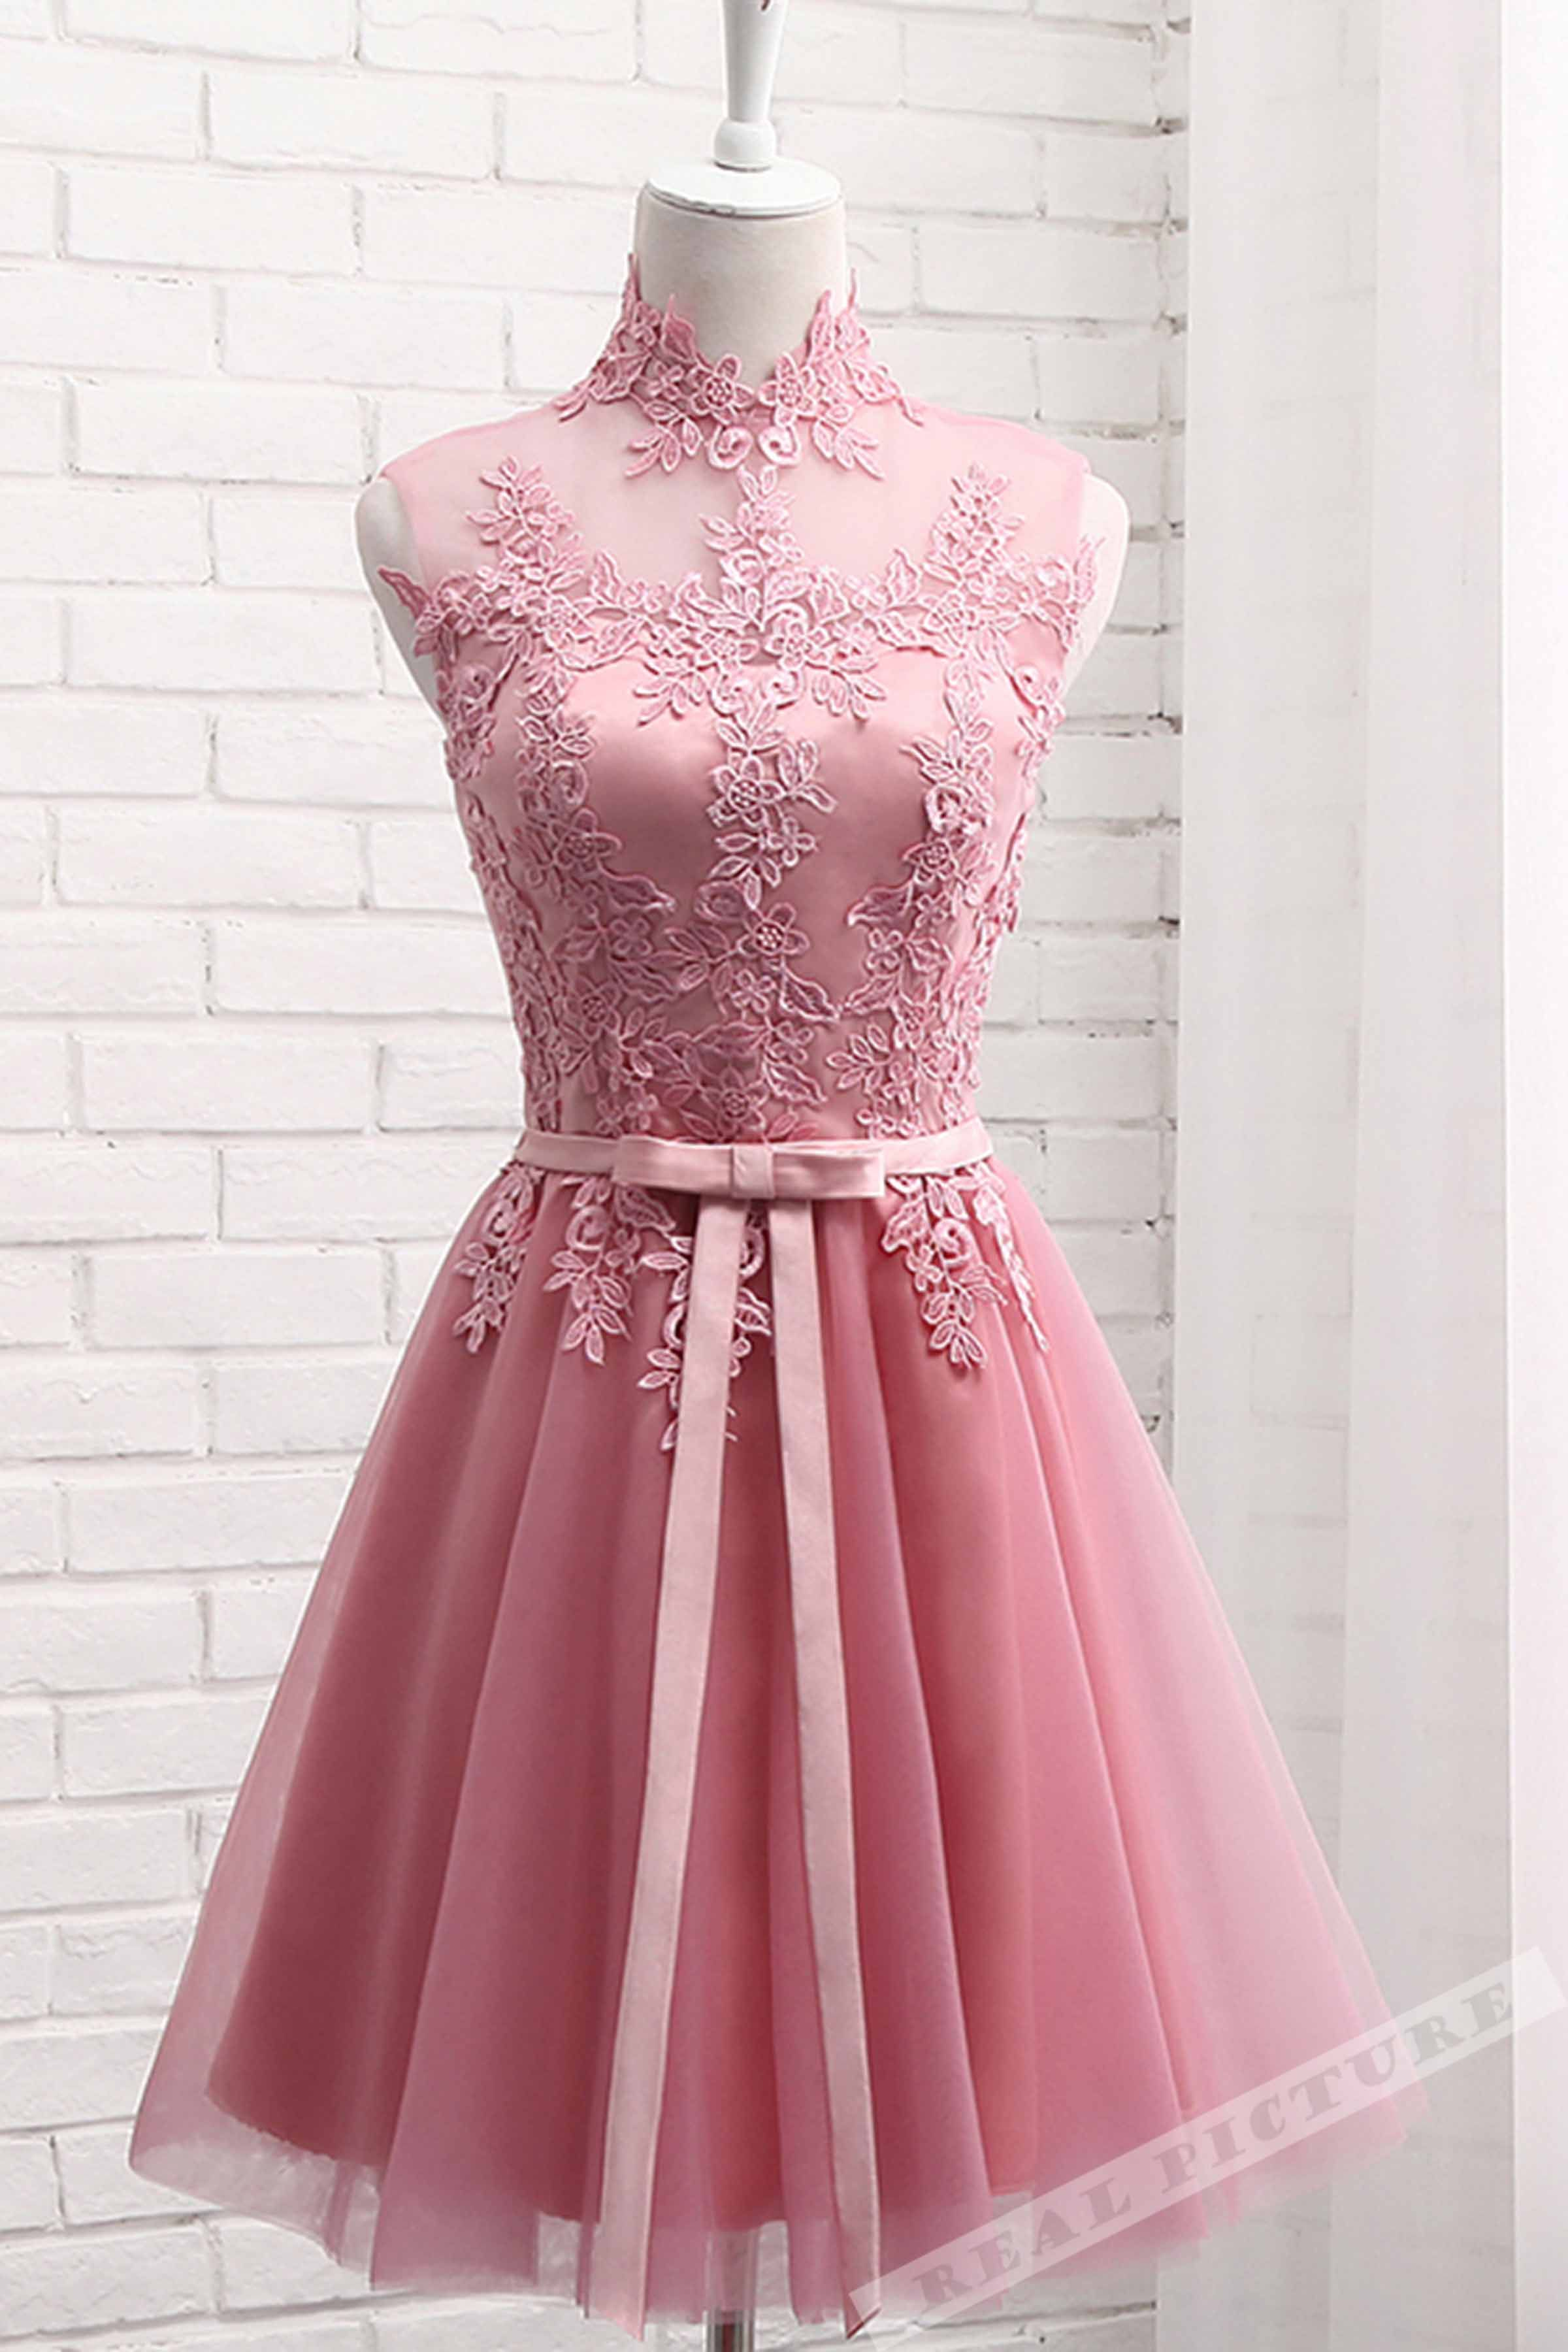 Cute pink tulle lace prom dress, homecoming dress, prom dresses for ...